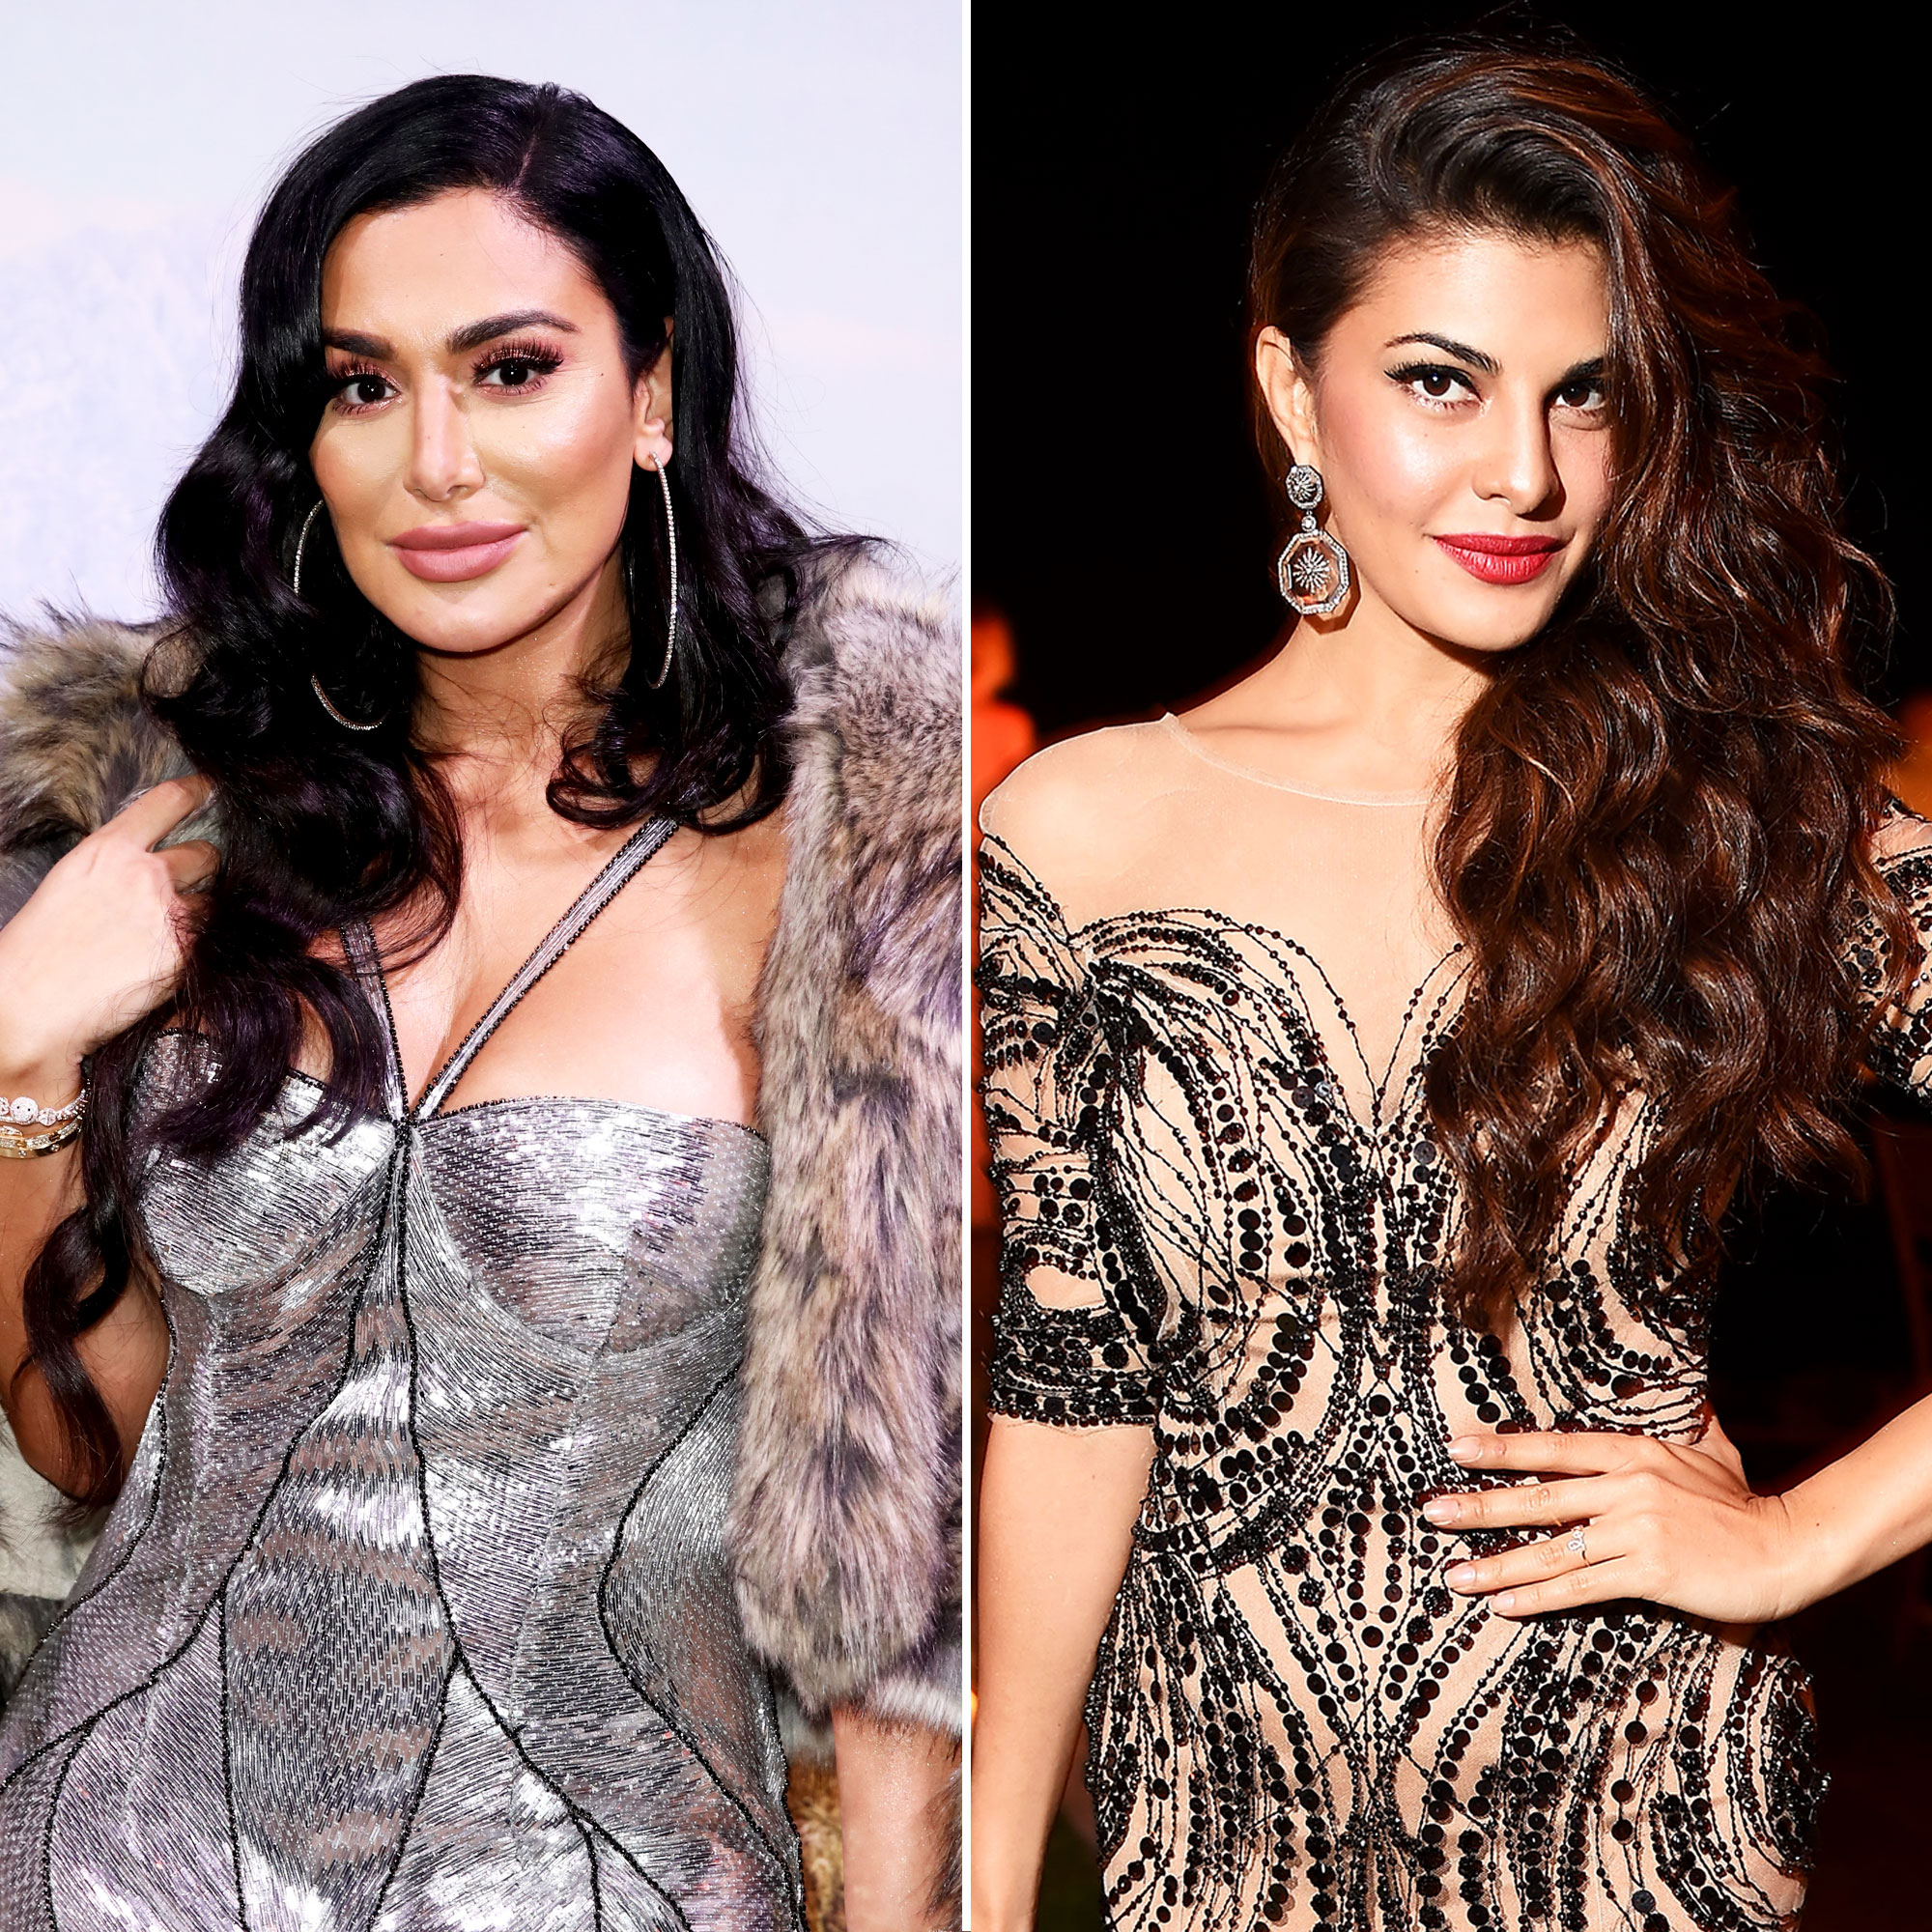 Everything We Know About Huda Beauty's Collab with Bollywood Actress Jacqueline Fernandez - Huda Kattan and Jacqueline Fernandez